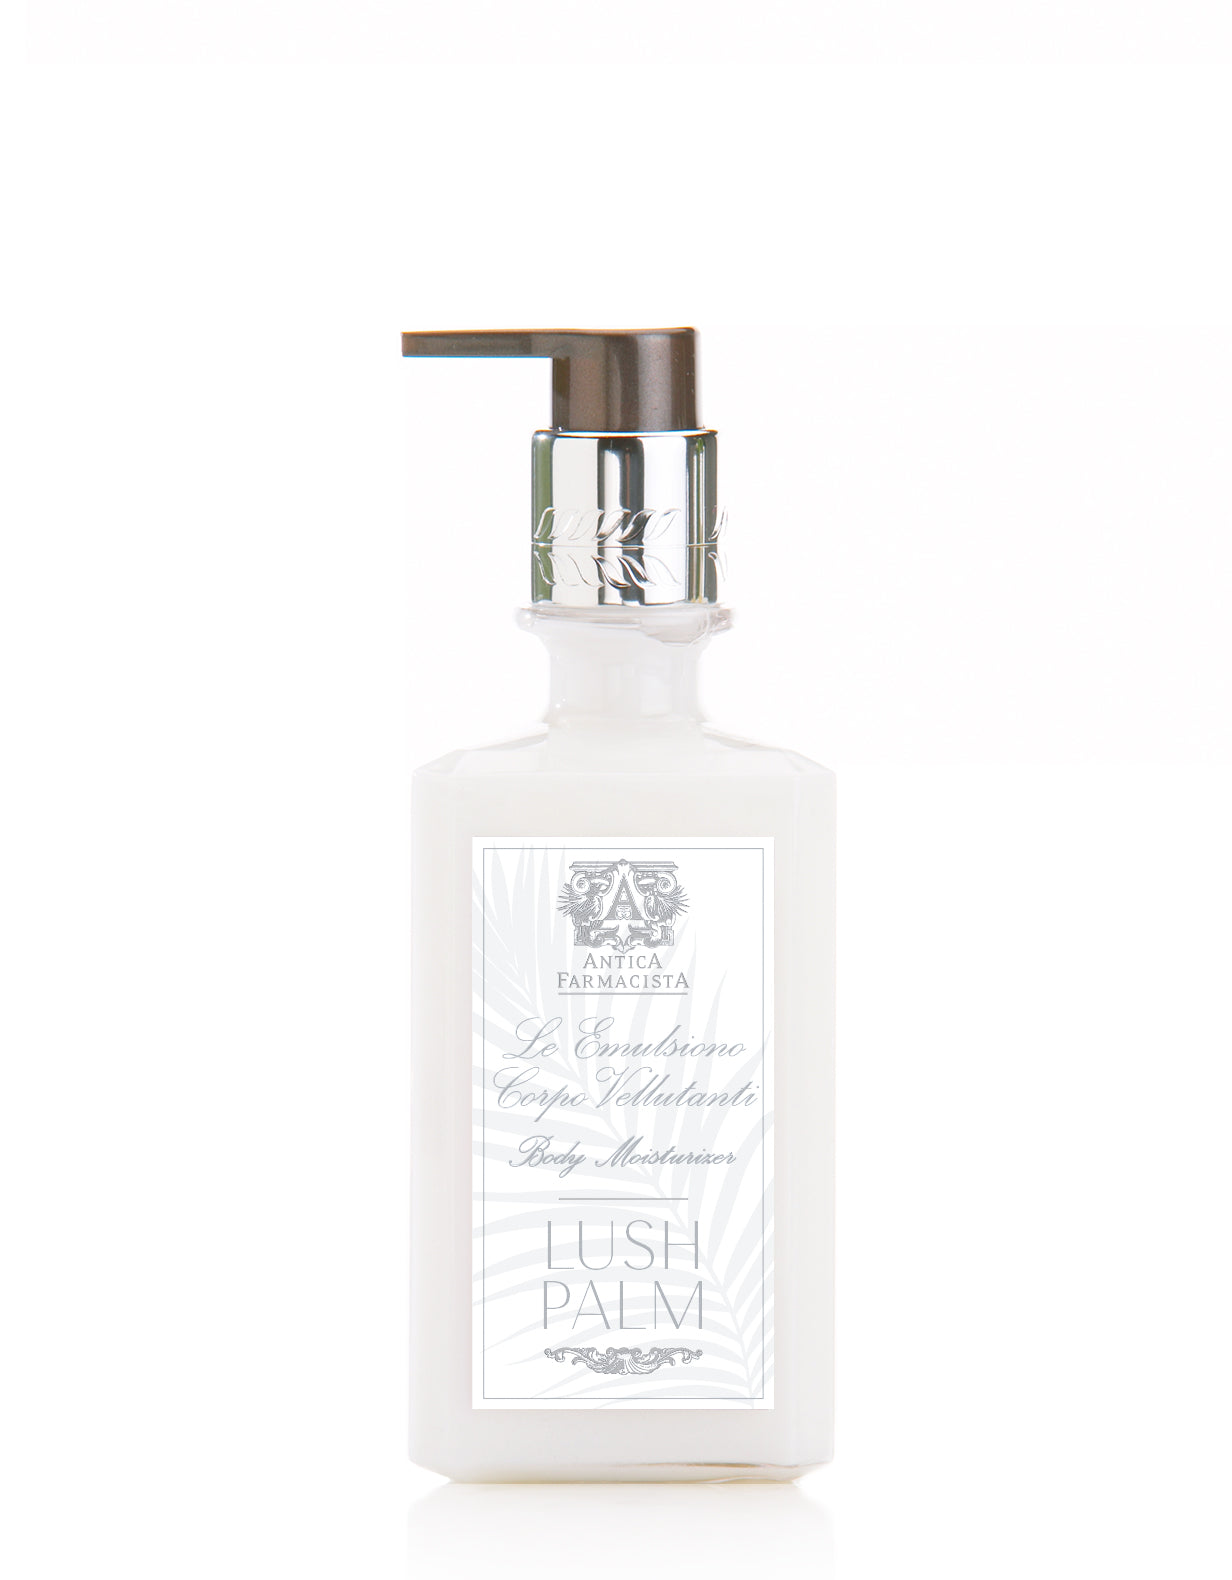 ANTICA FARMACISTA - 10 OZ BODY MOISTURIZER IN LUSH PALM